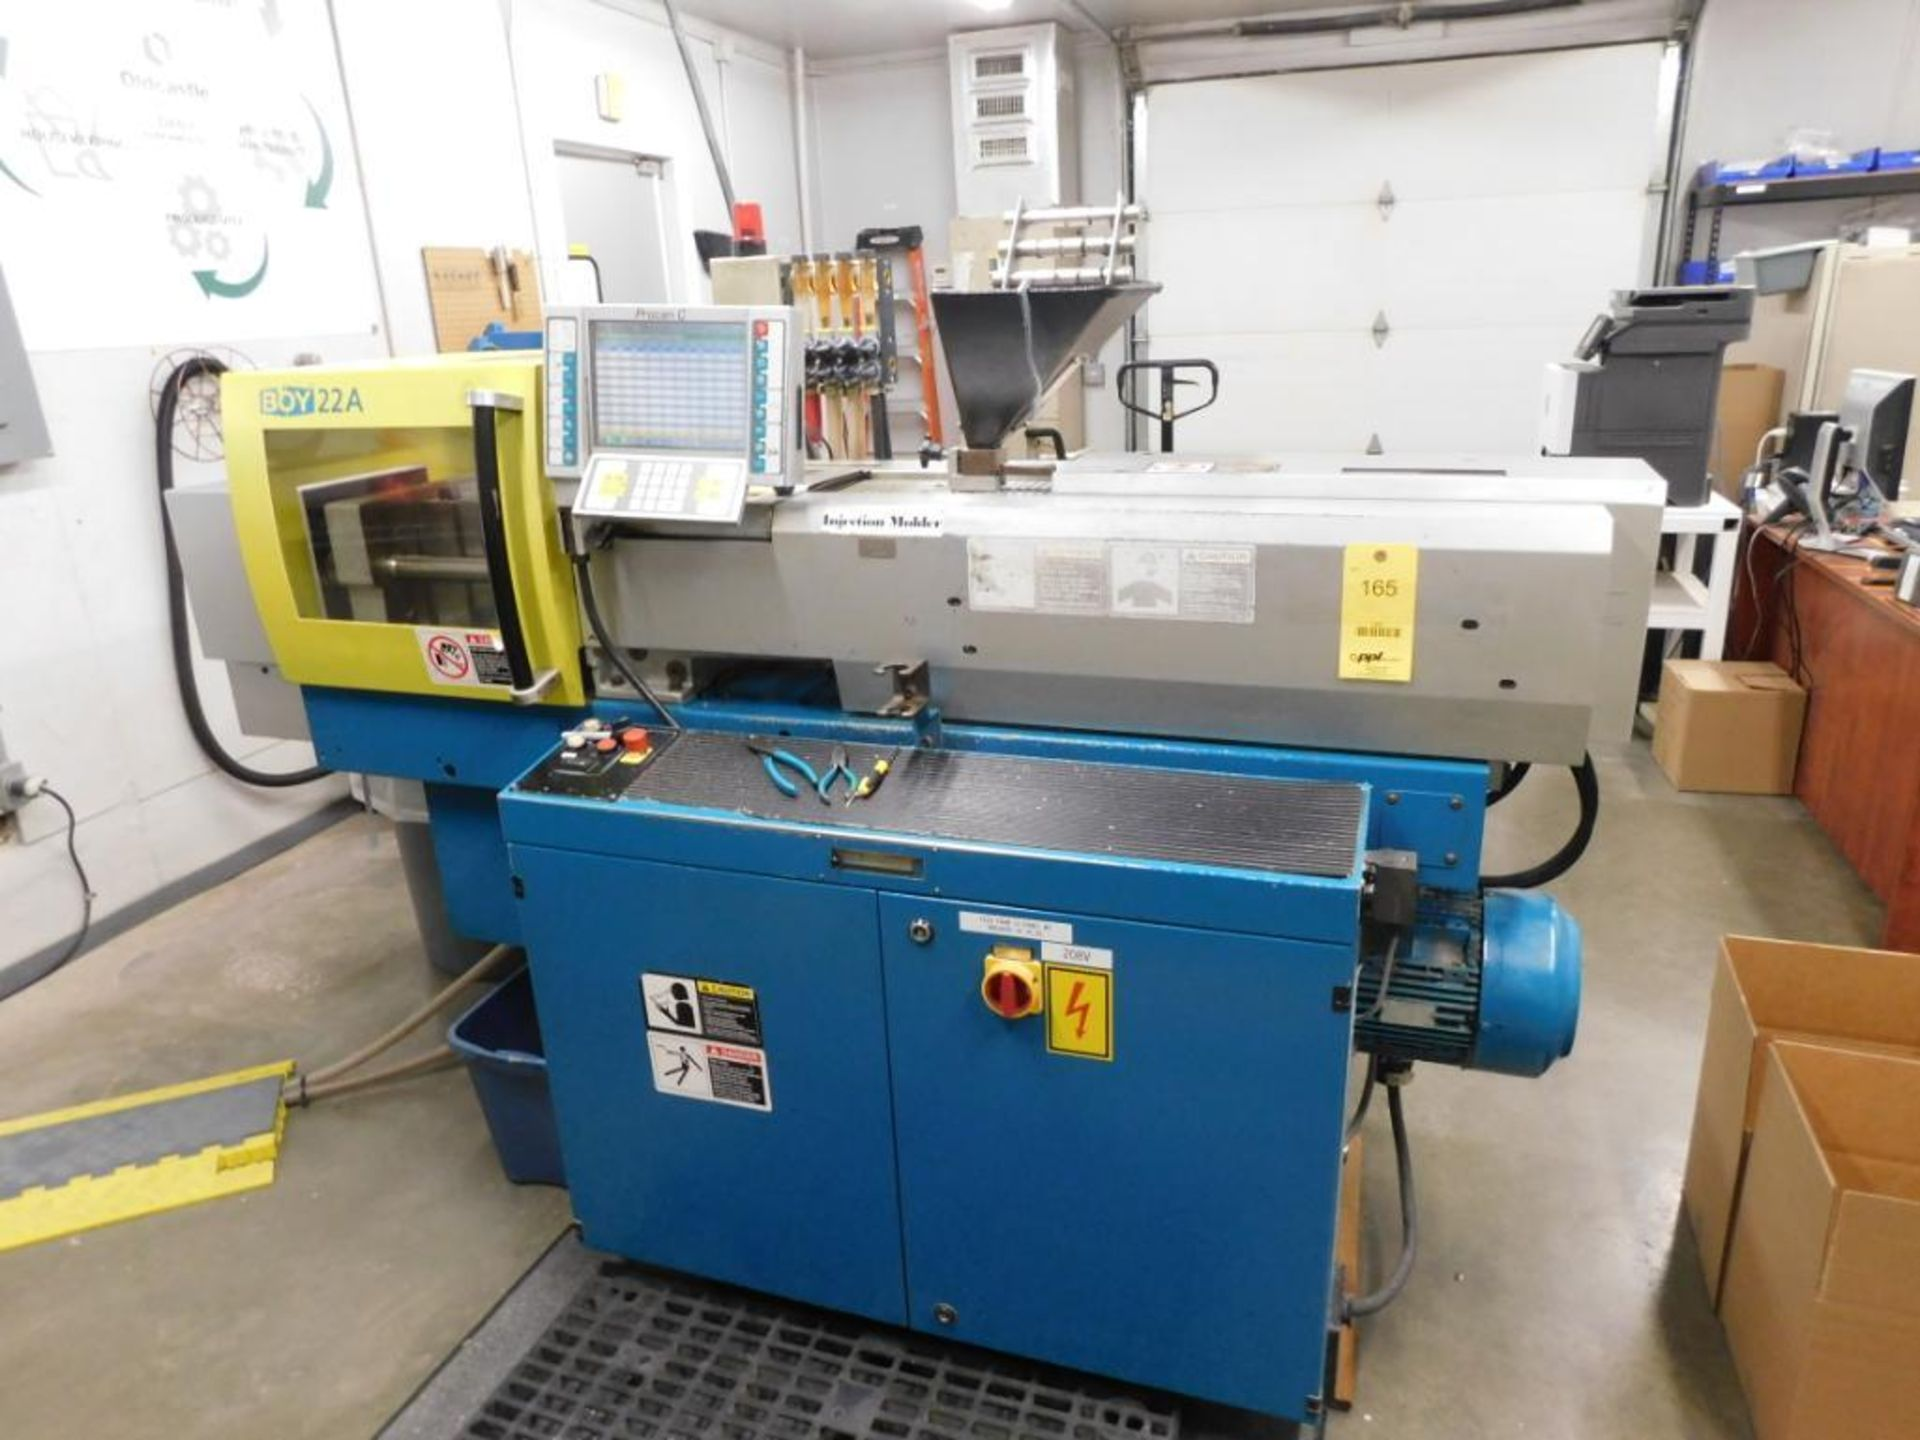 Lot 165 - Boy Injection Molder Model 22A, S/N 39206 (2003), with Procan C Operator Panel (located at Lowell